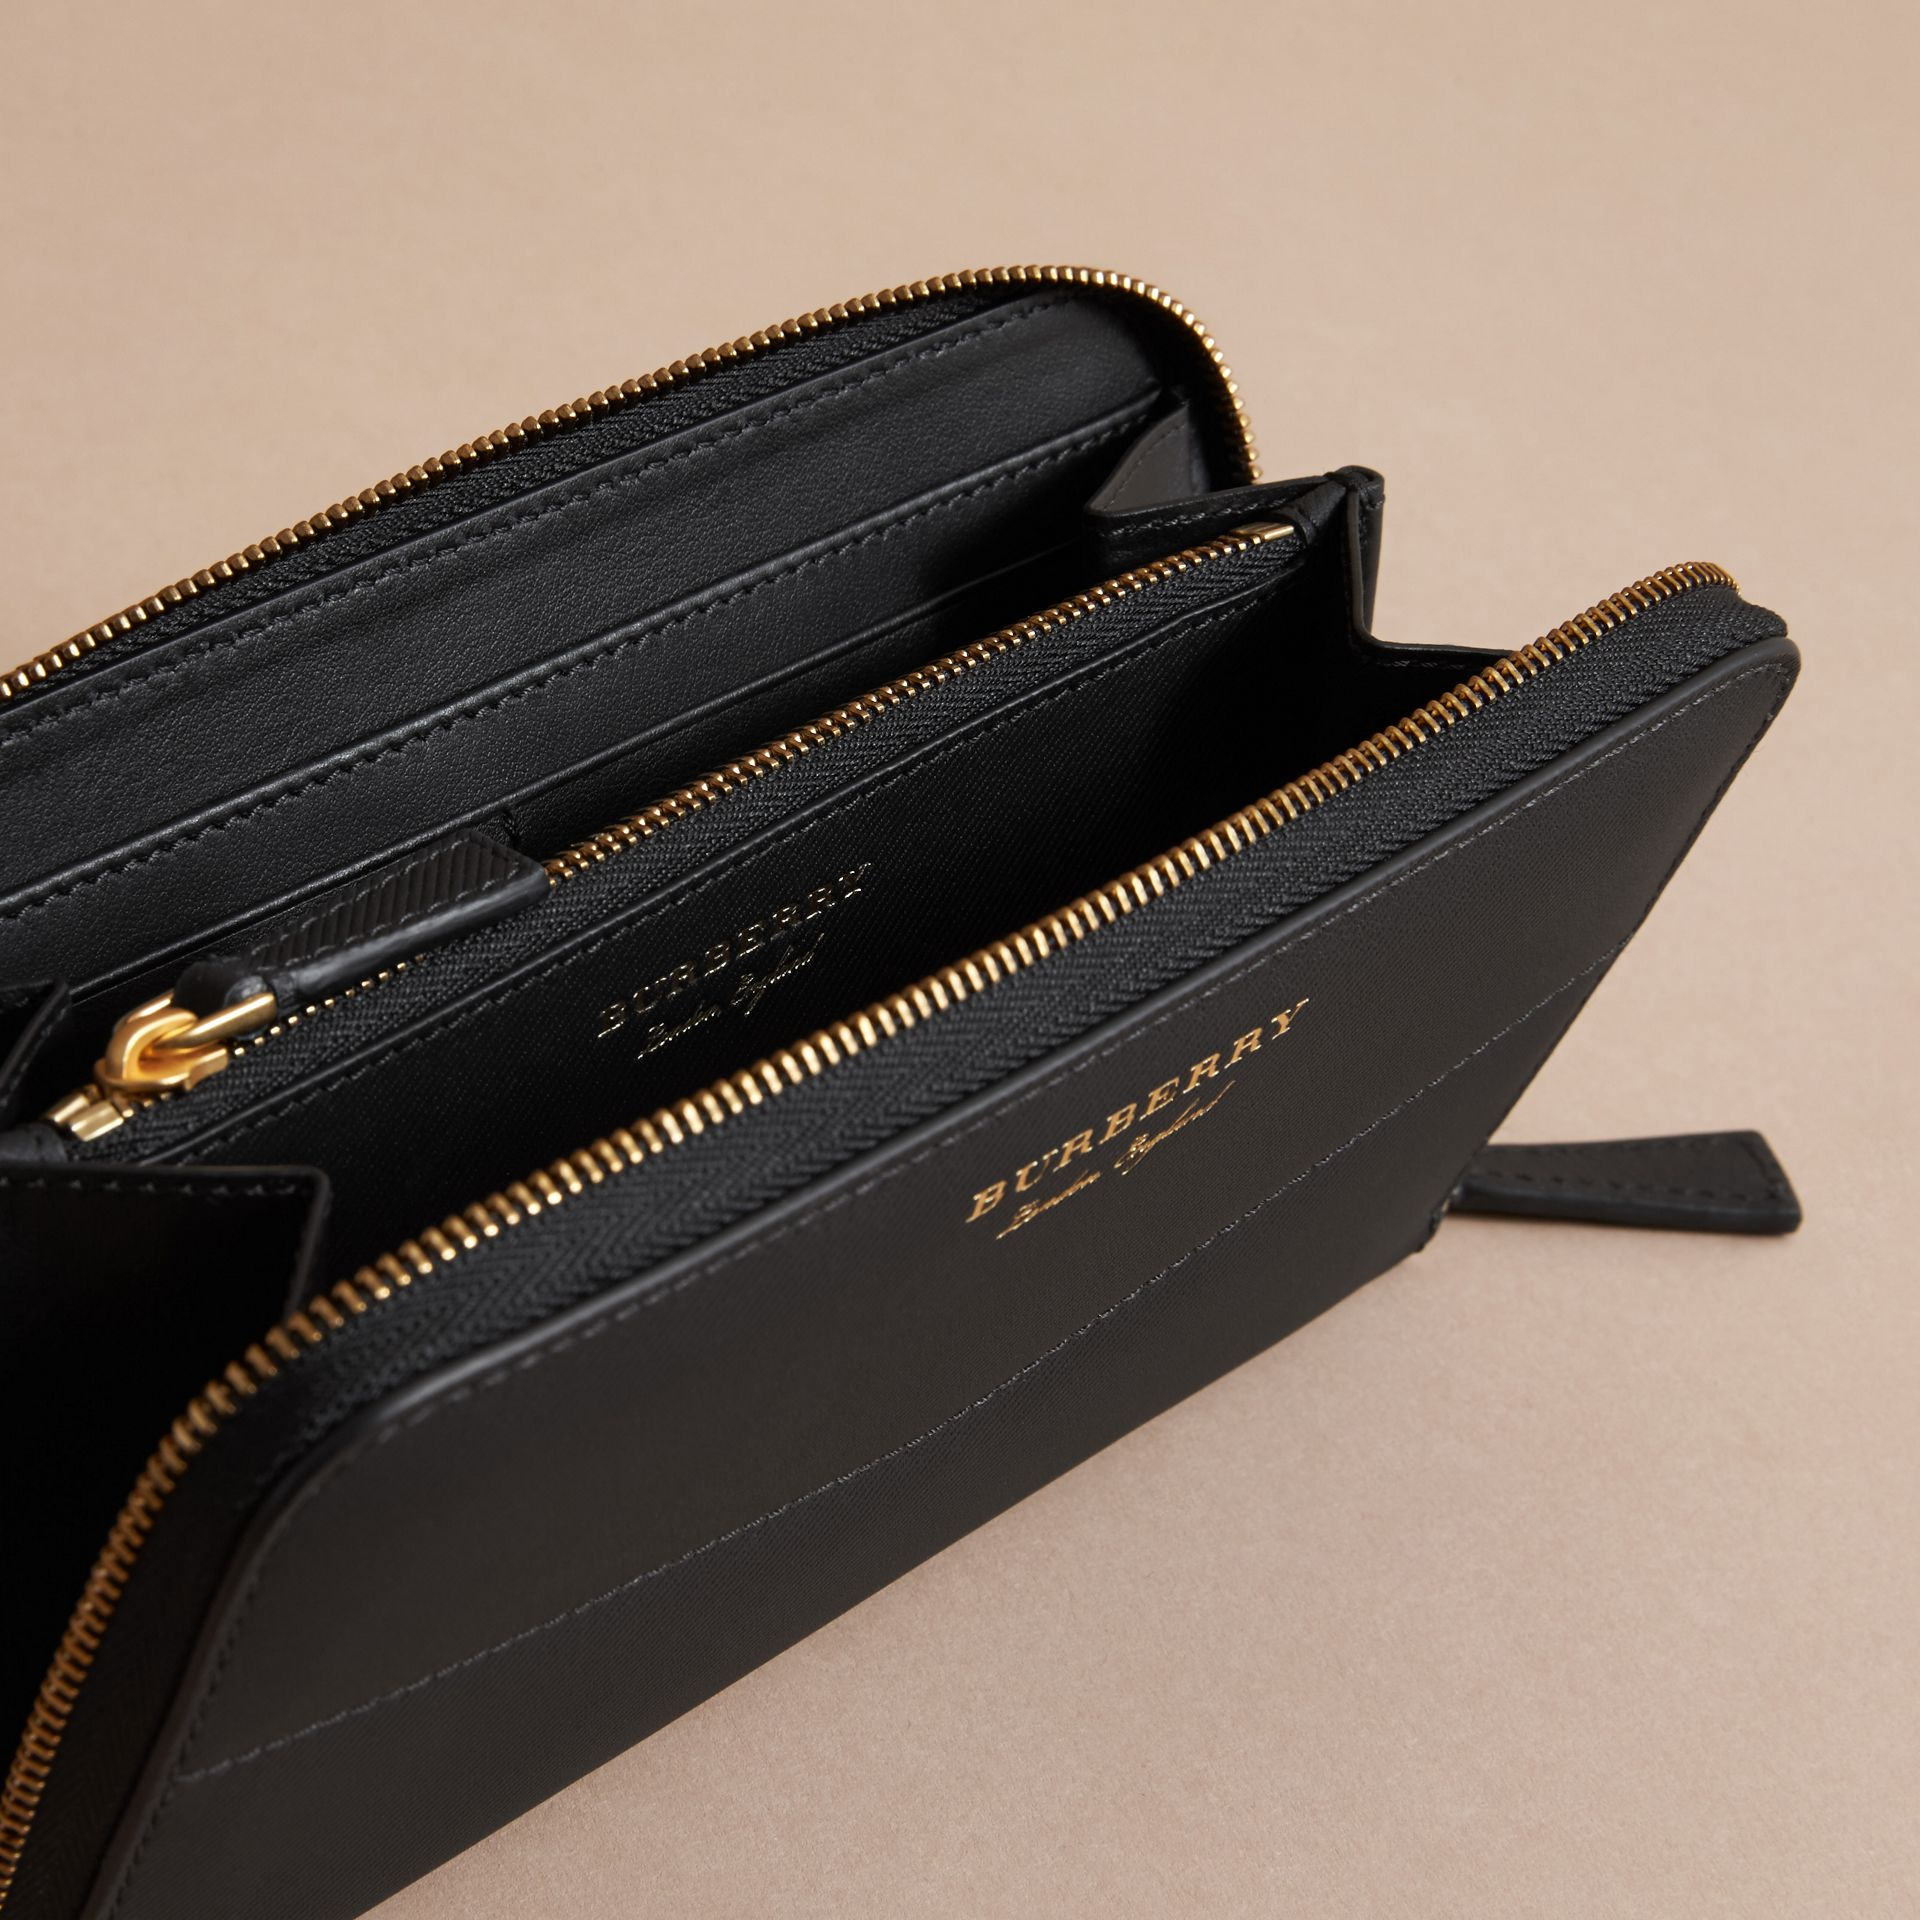 Trench Leather Ziparound Wallet in Black - Women | Burberry Hong Kong - gallery image 5